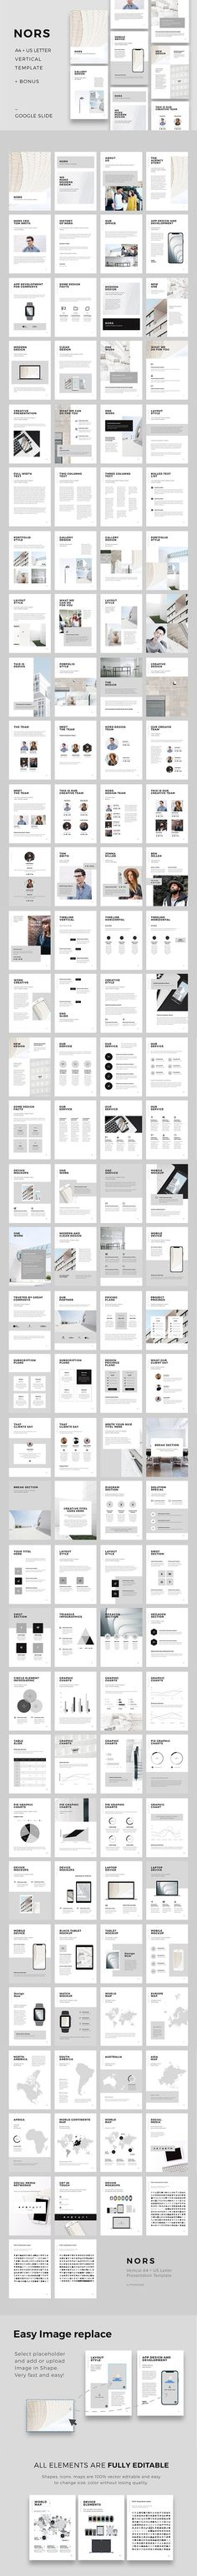 NORS Vertical Google Slide + GIFT by PixaSquare on @creativemarket  Clean, modern and minimal Vertical Google Slides Template in A4 & US Letter Printable Format. This layout gives you many possibilities of creativity. Perfect for Presentation, Magazine, Brochures, Portfolio Showcase and many more. You can edit everything very easy in your Google Slides Account.